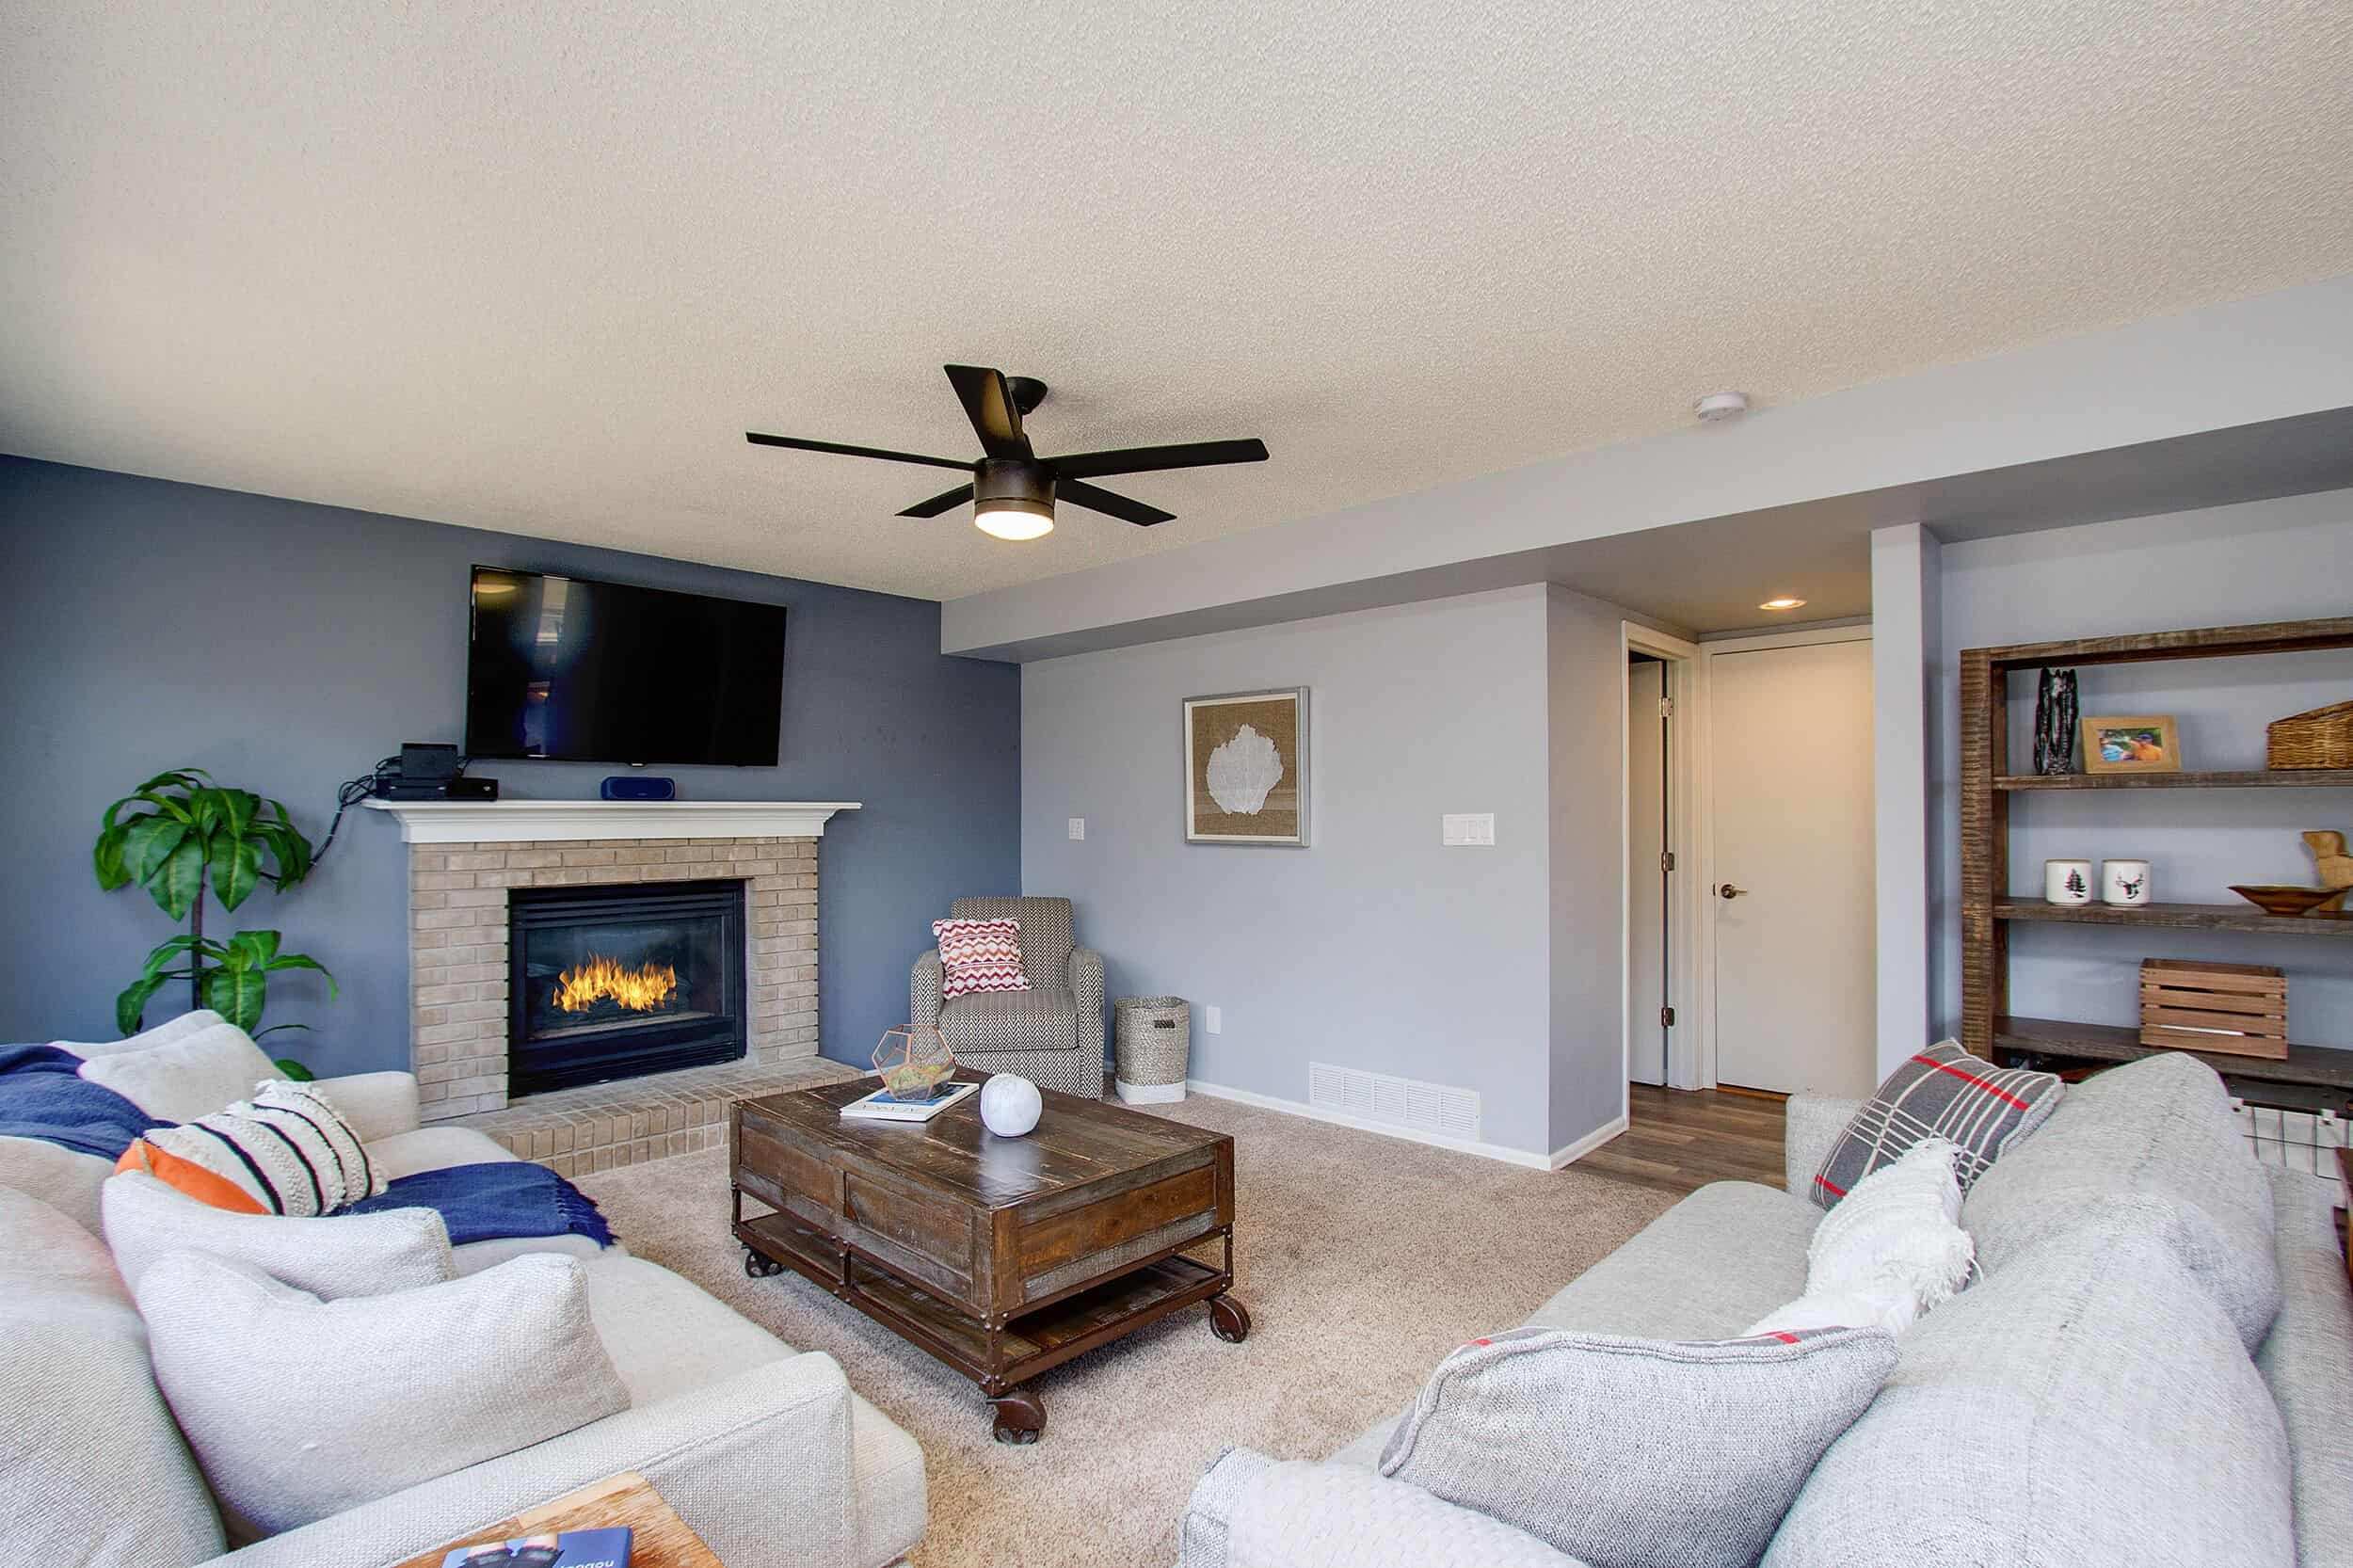 Family Room with Entry to Powder Bath, Laundry and Garage